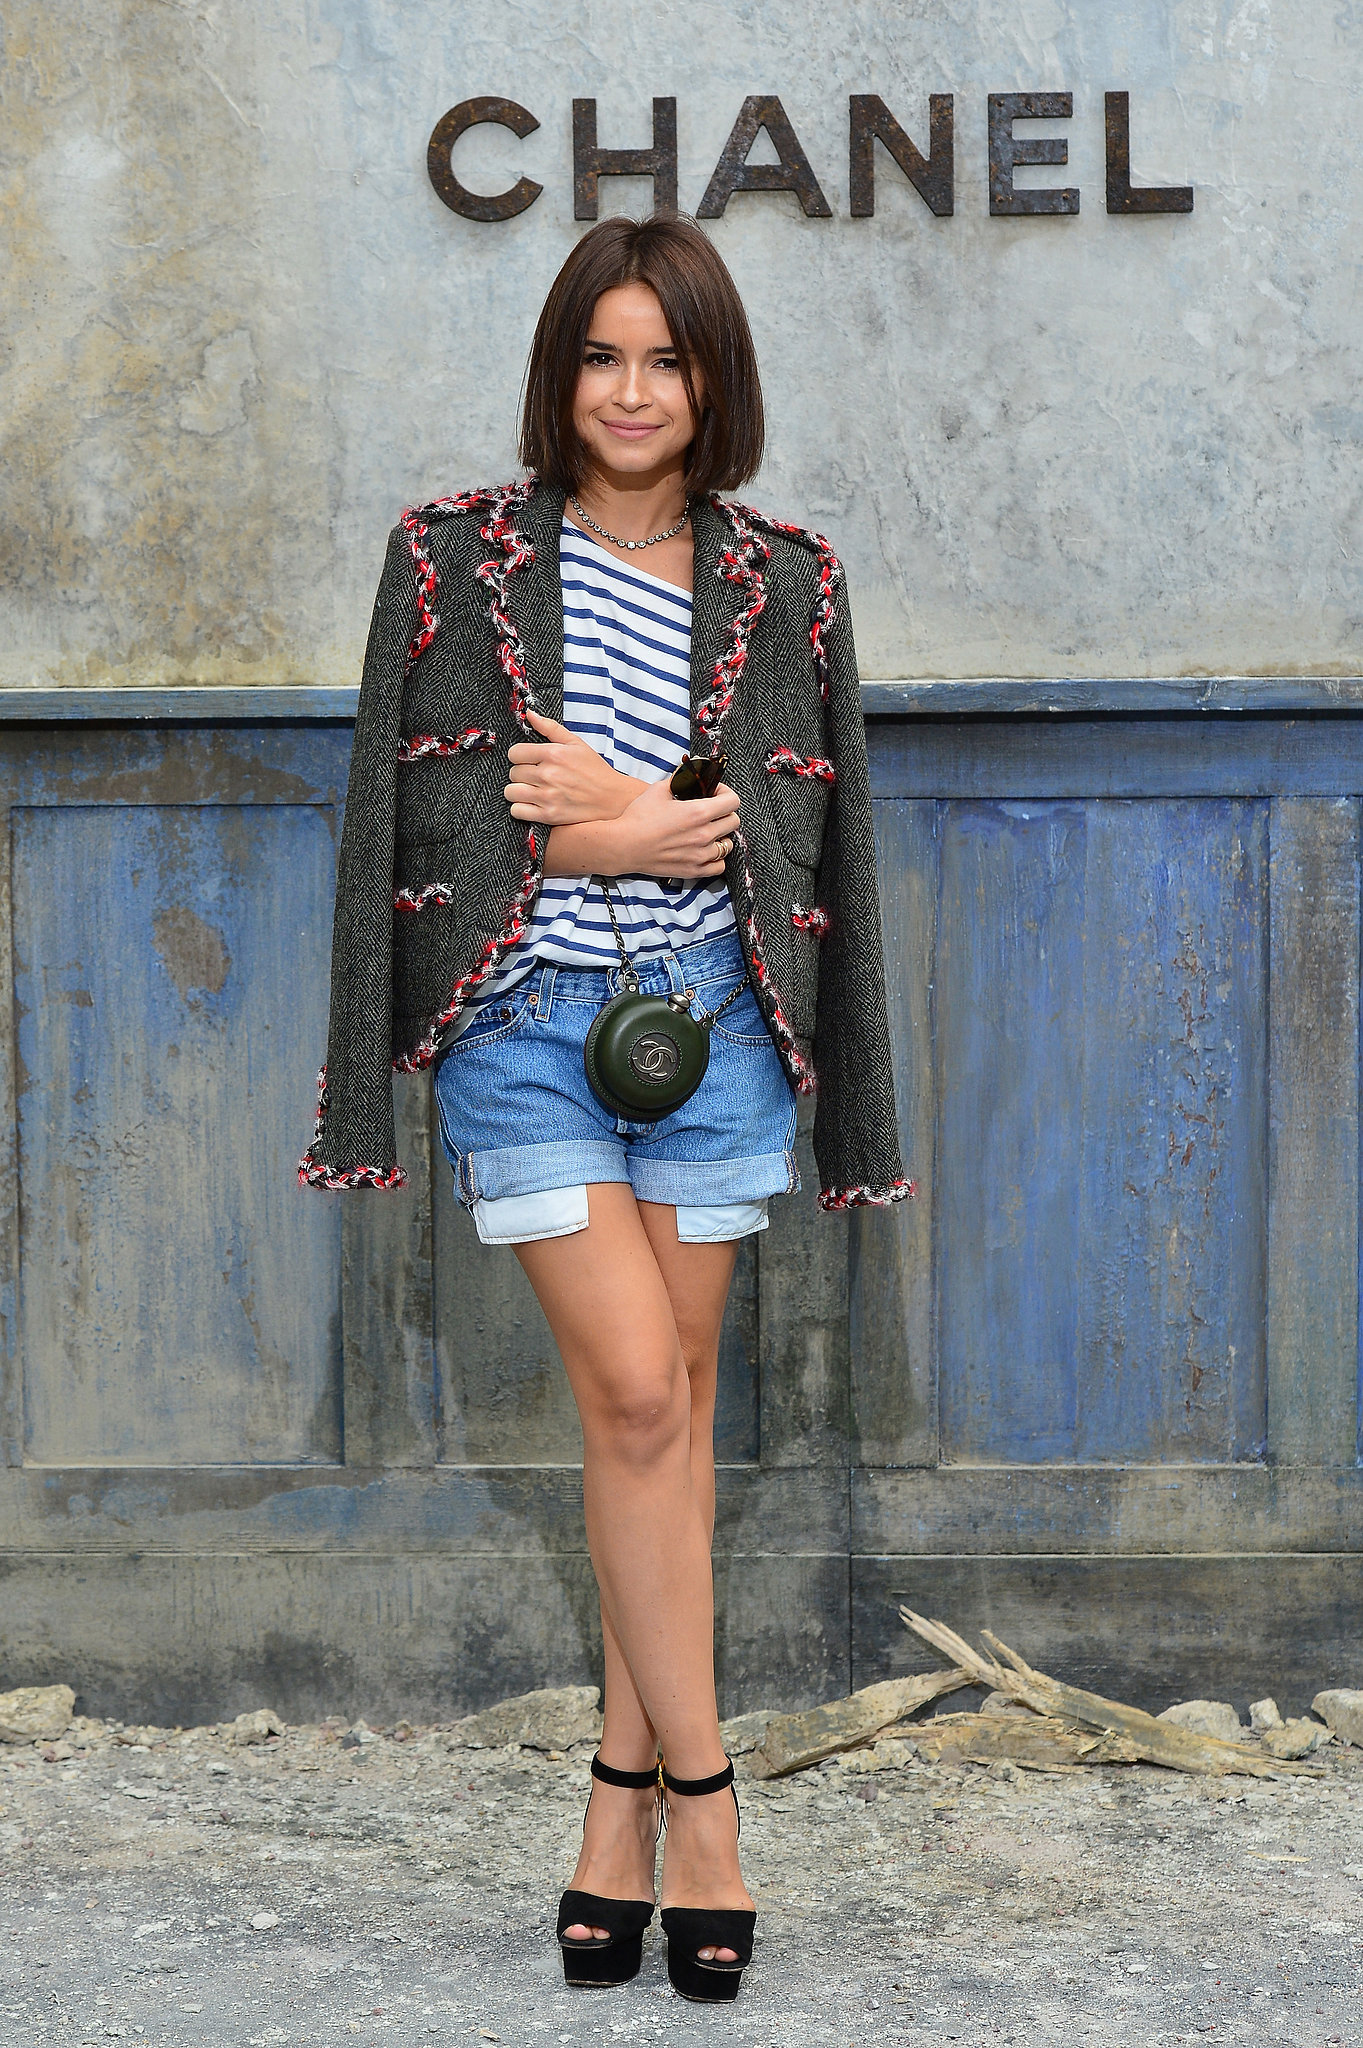 Also at Chanel? Miroslava Duma, who topped cutoffs and a striped tee with a luxe blazer.